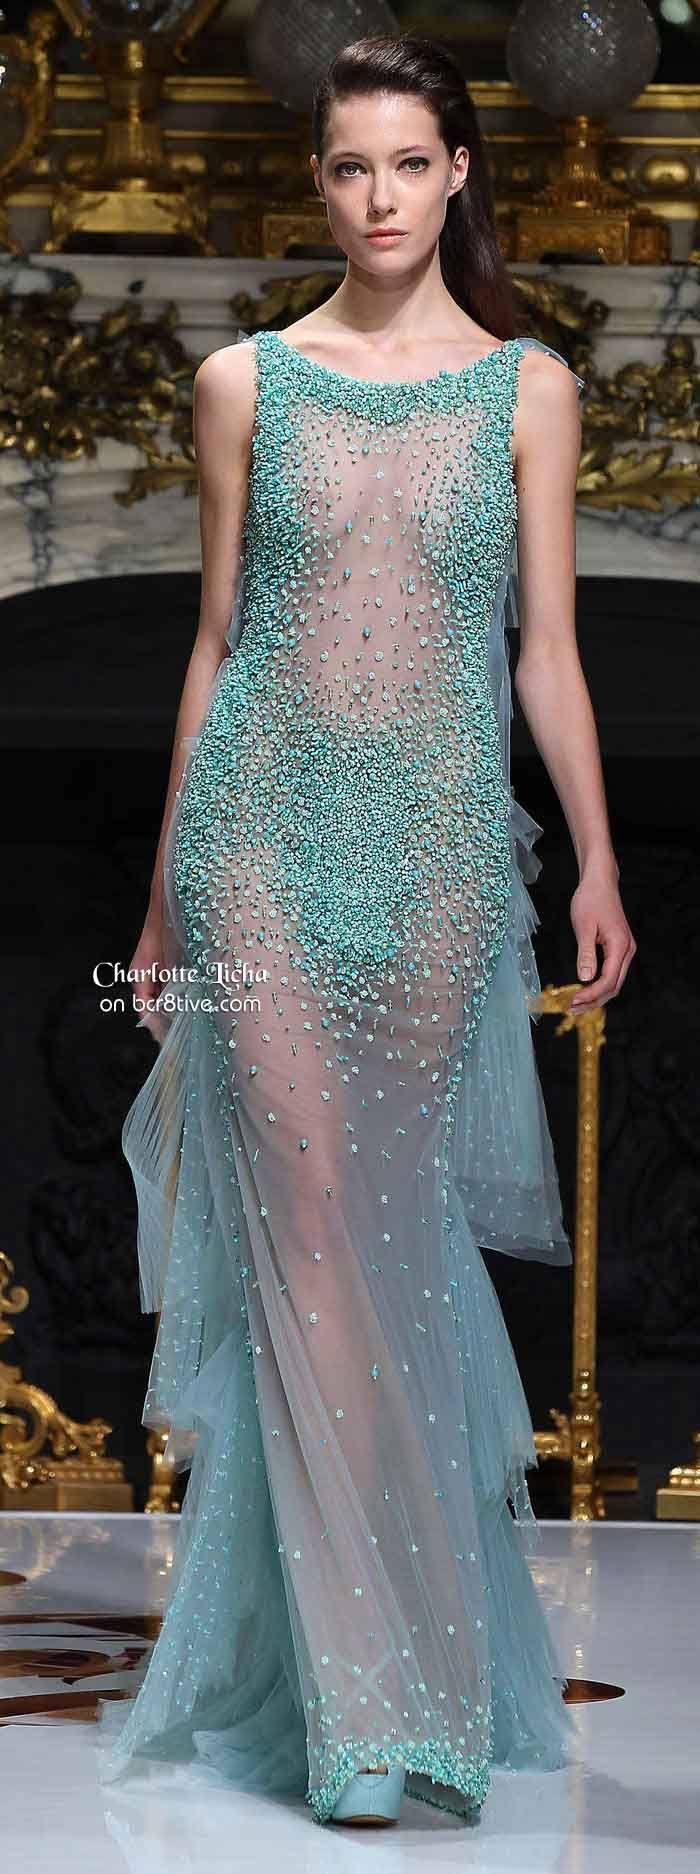 Enchanting Charlotte Prom Dress Stores Image - All Wedding Dresses ...